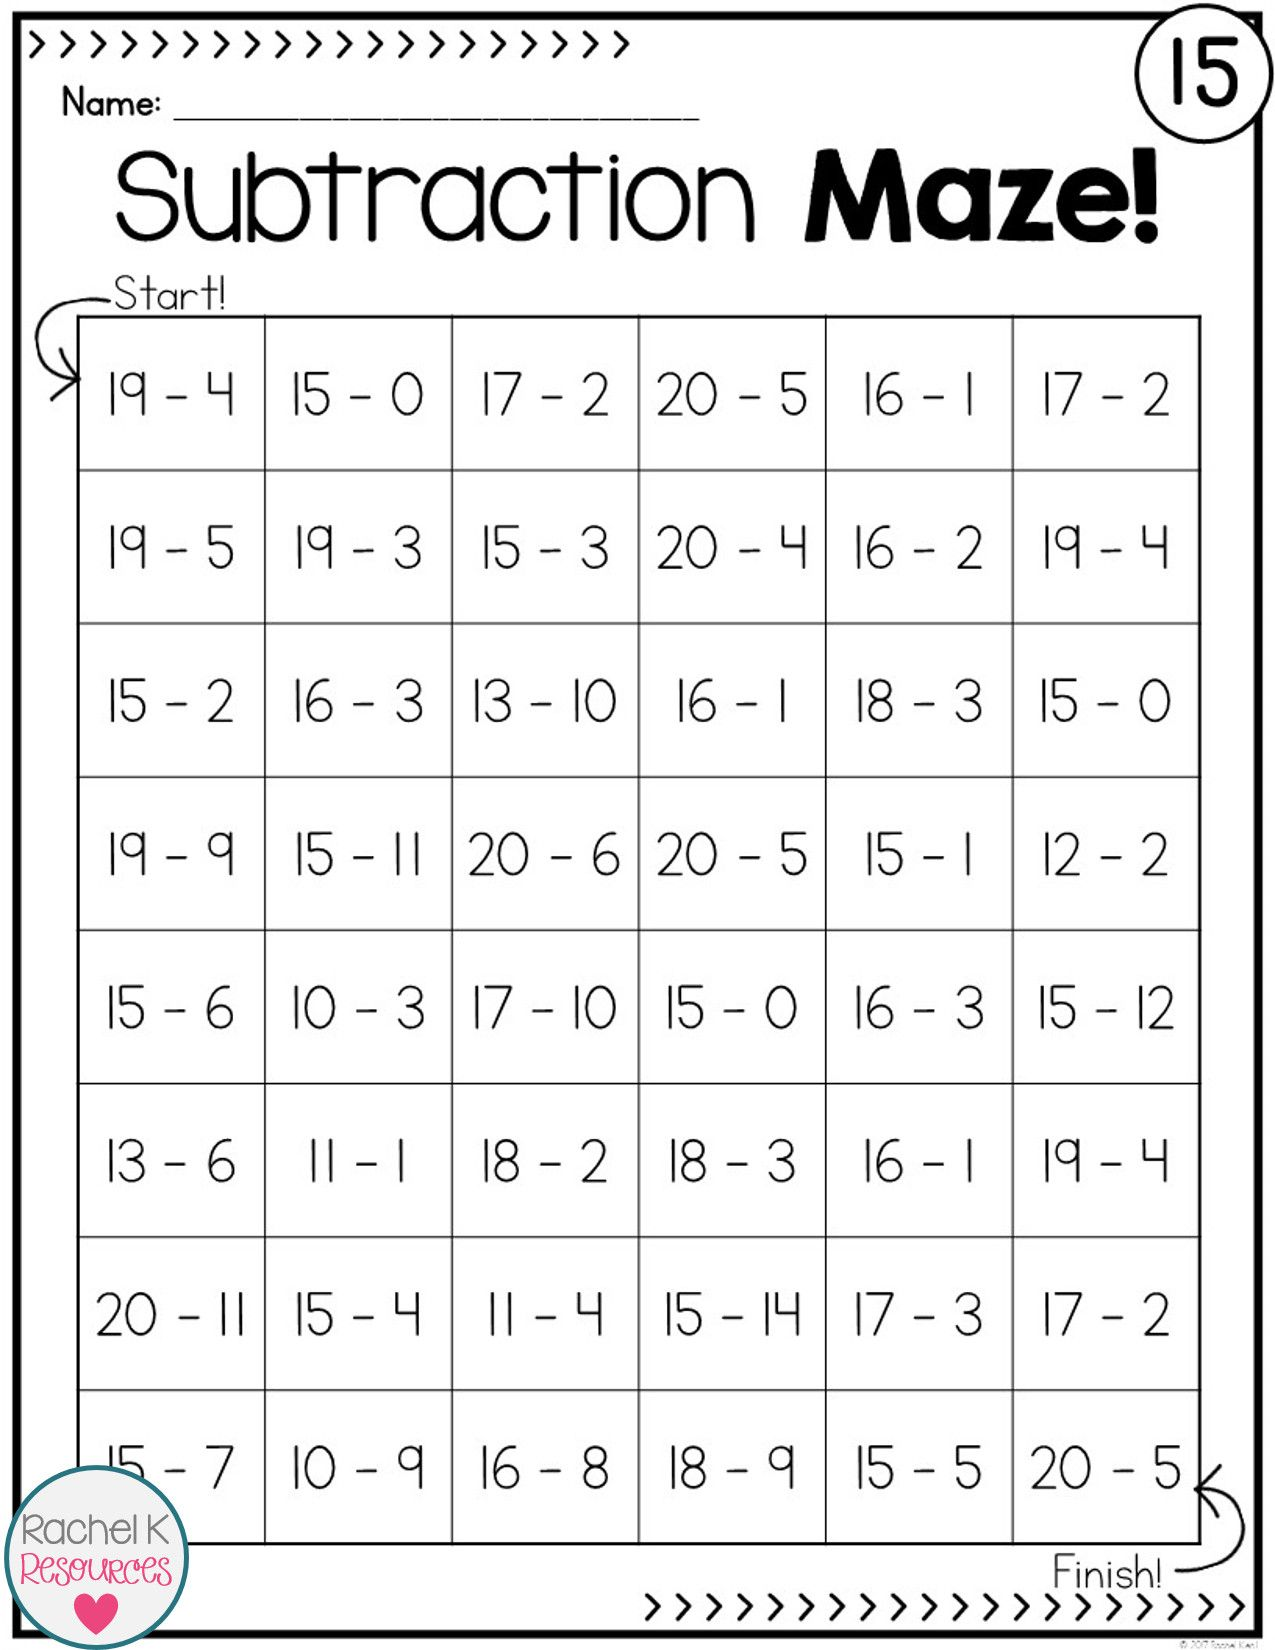 4 Free Math Worksheets Second Grade 2 Addition Adding Whole Tens 3 Digits Missing Subtraction Practice Addition And Subtraction Worksheets Fun Math Worksheets